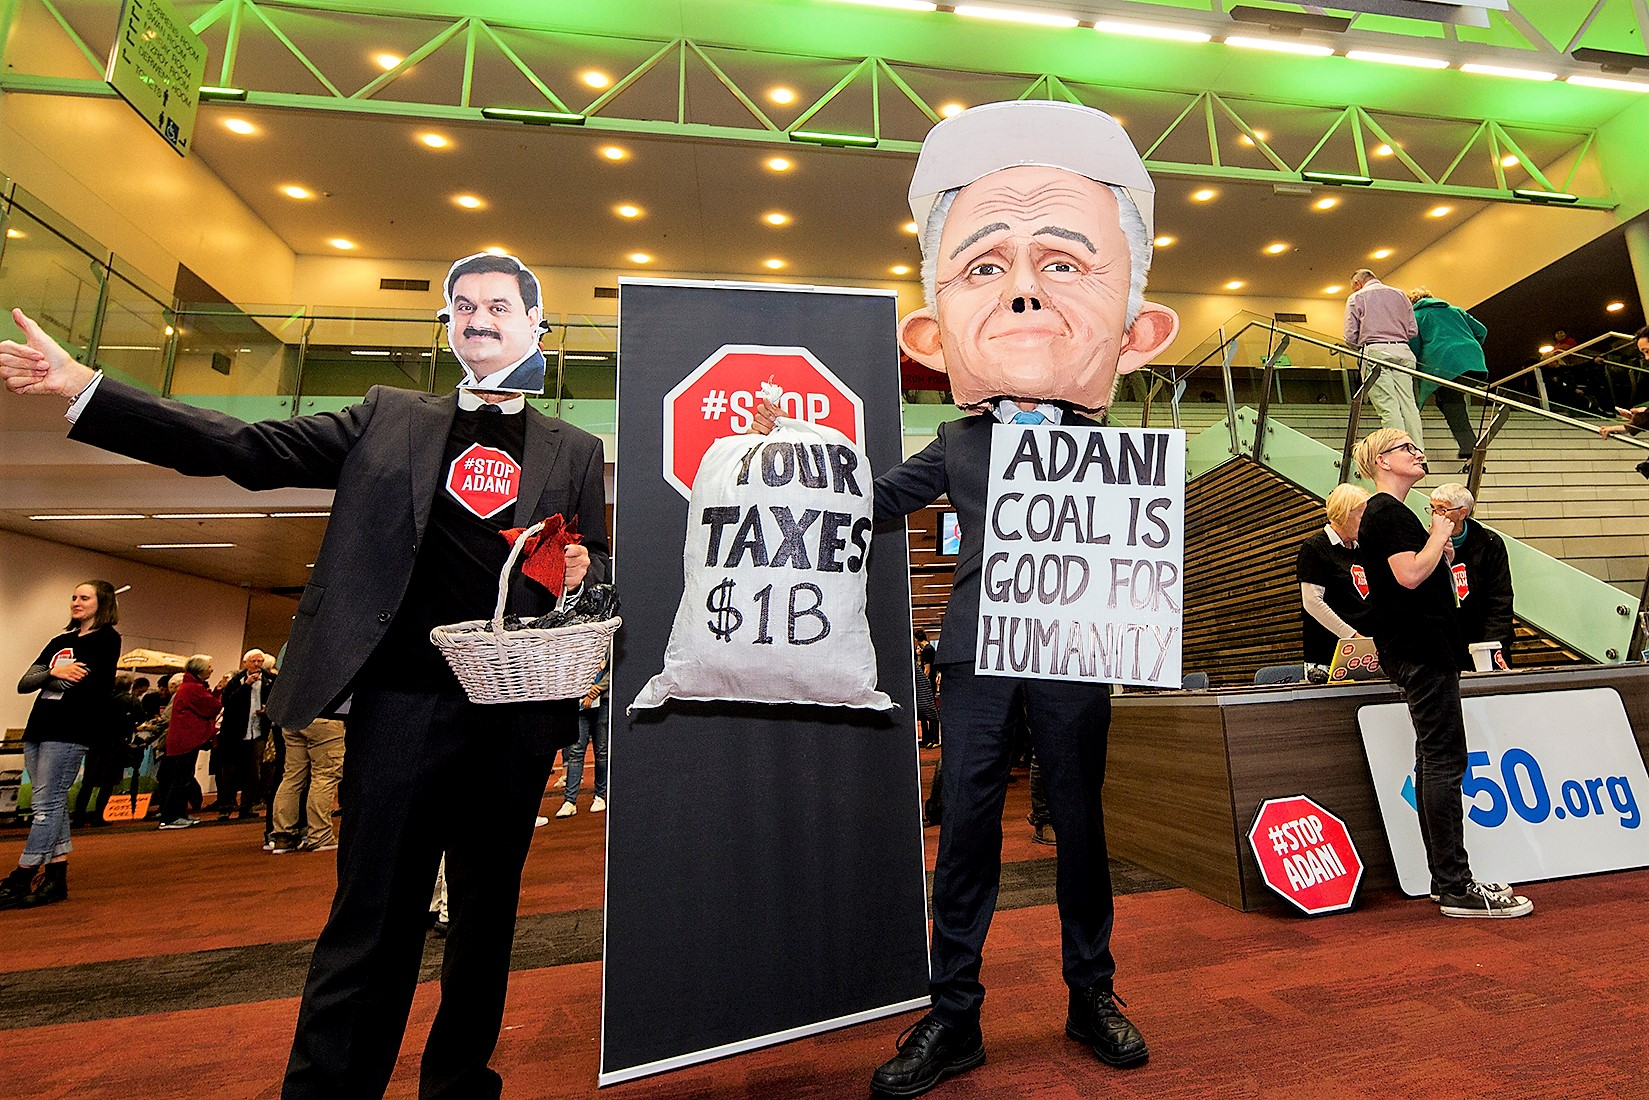 Turnbull wants to give Adani $1 billion